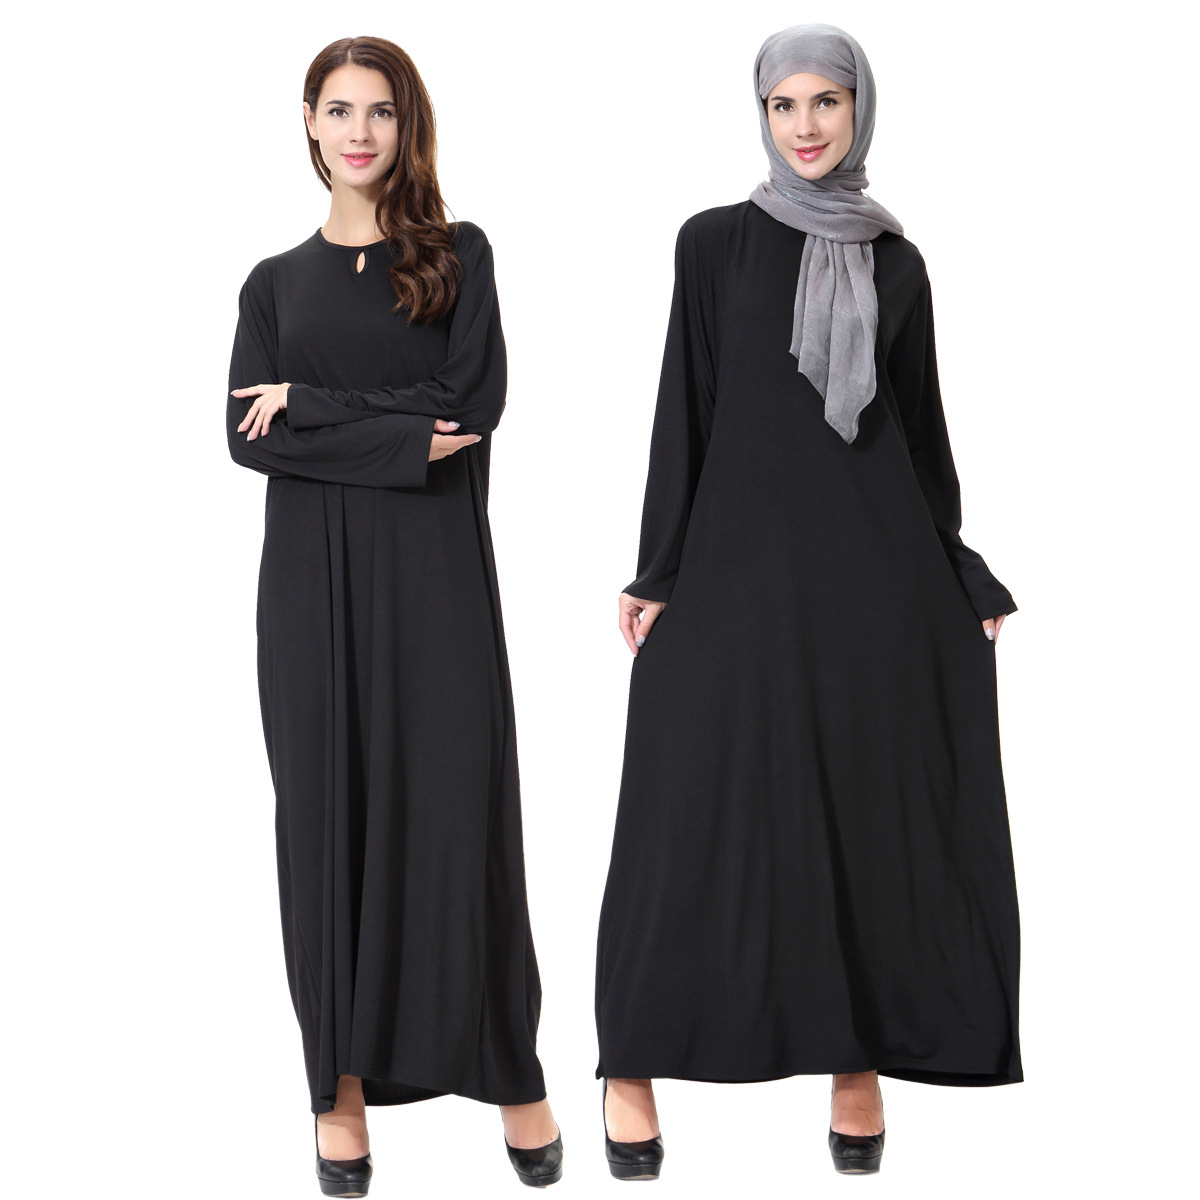 Image result for Plain Black Abaya